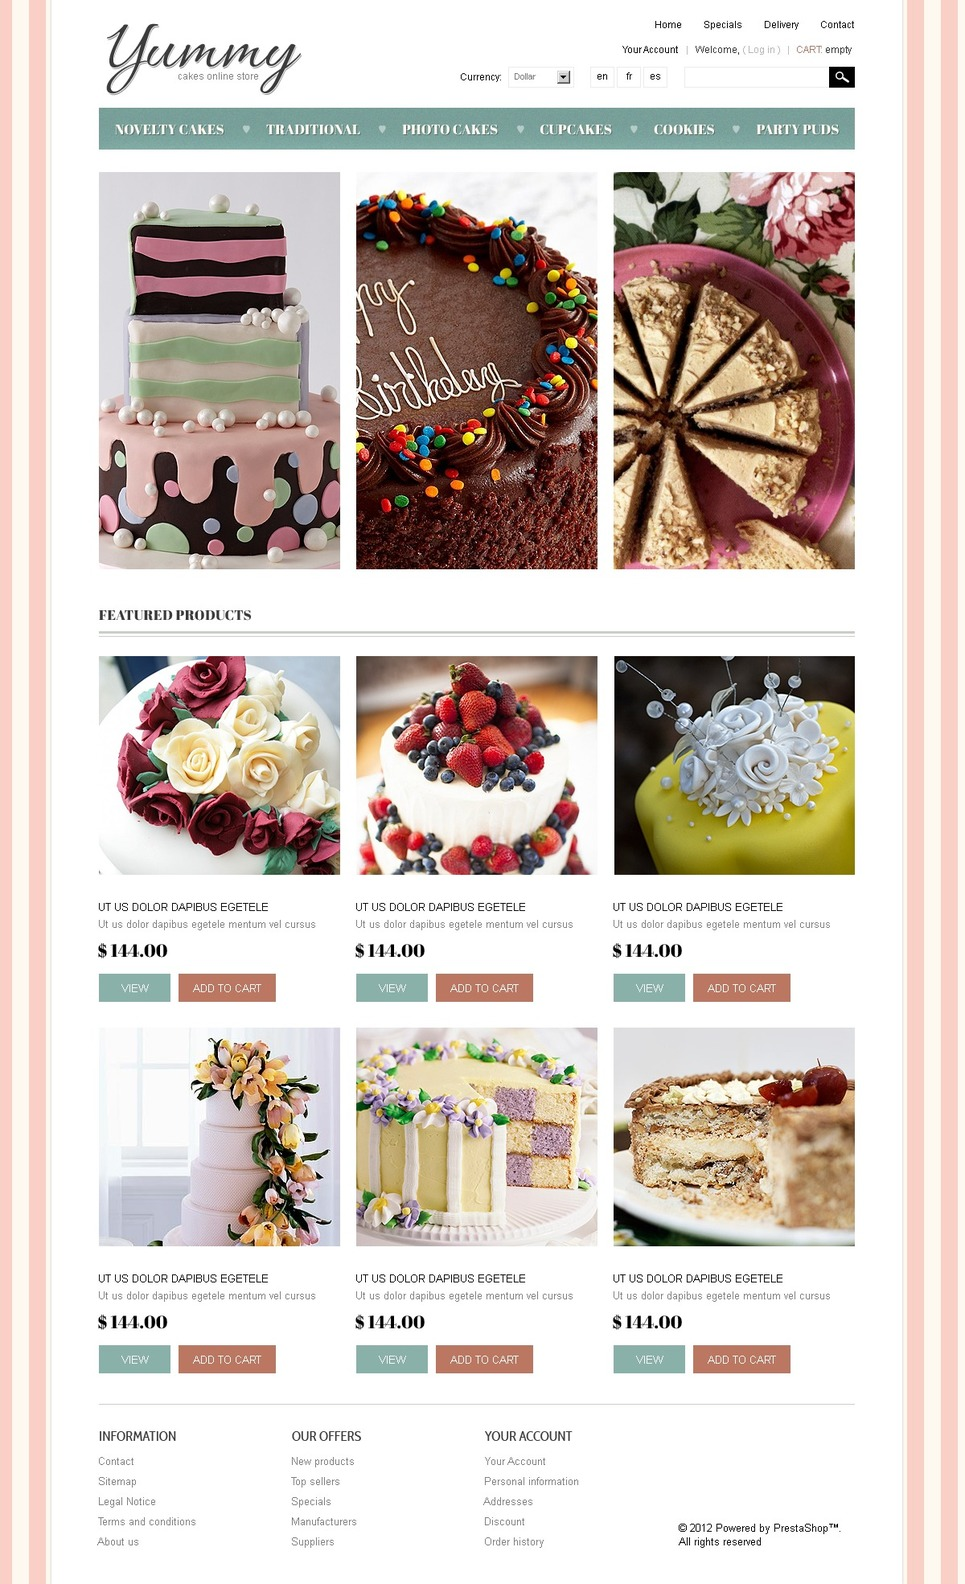 Yummy Cakes (ecommerce PrestaShop template) Item Picture